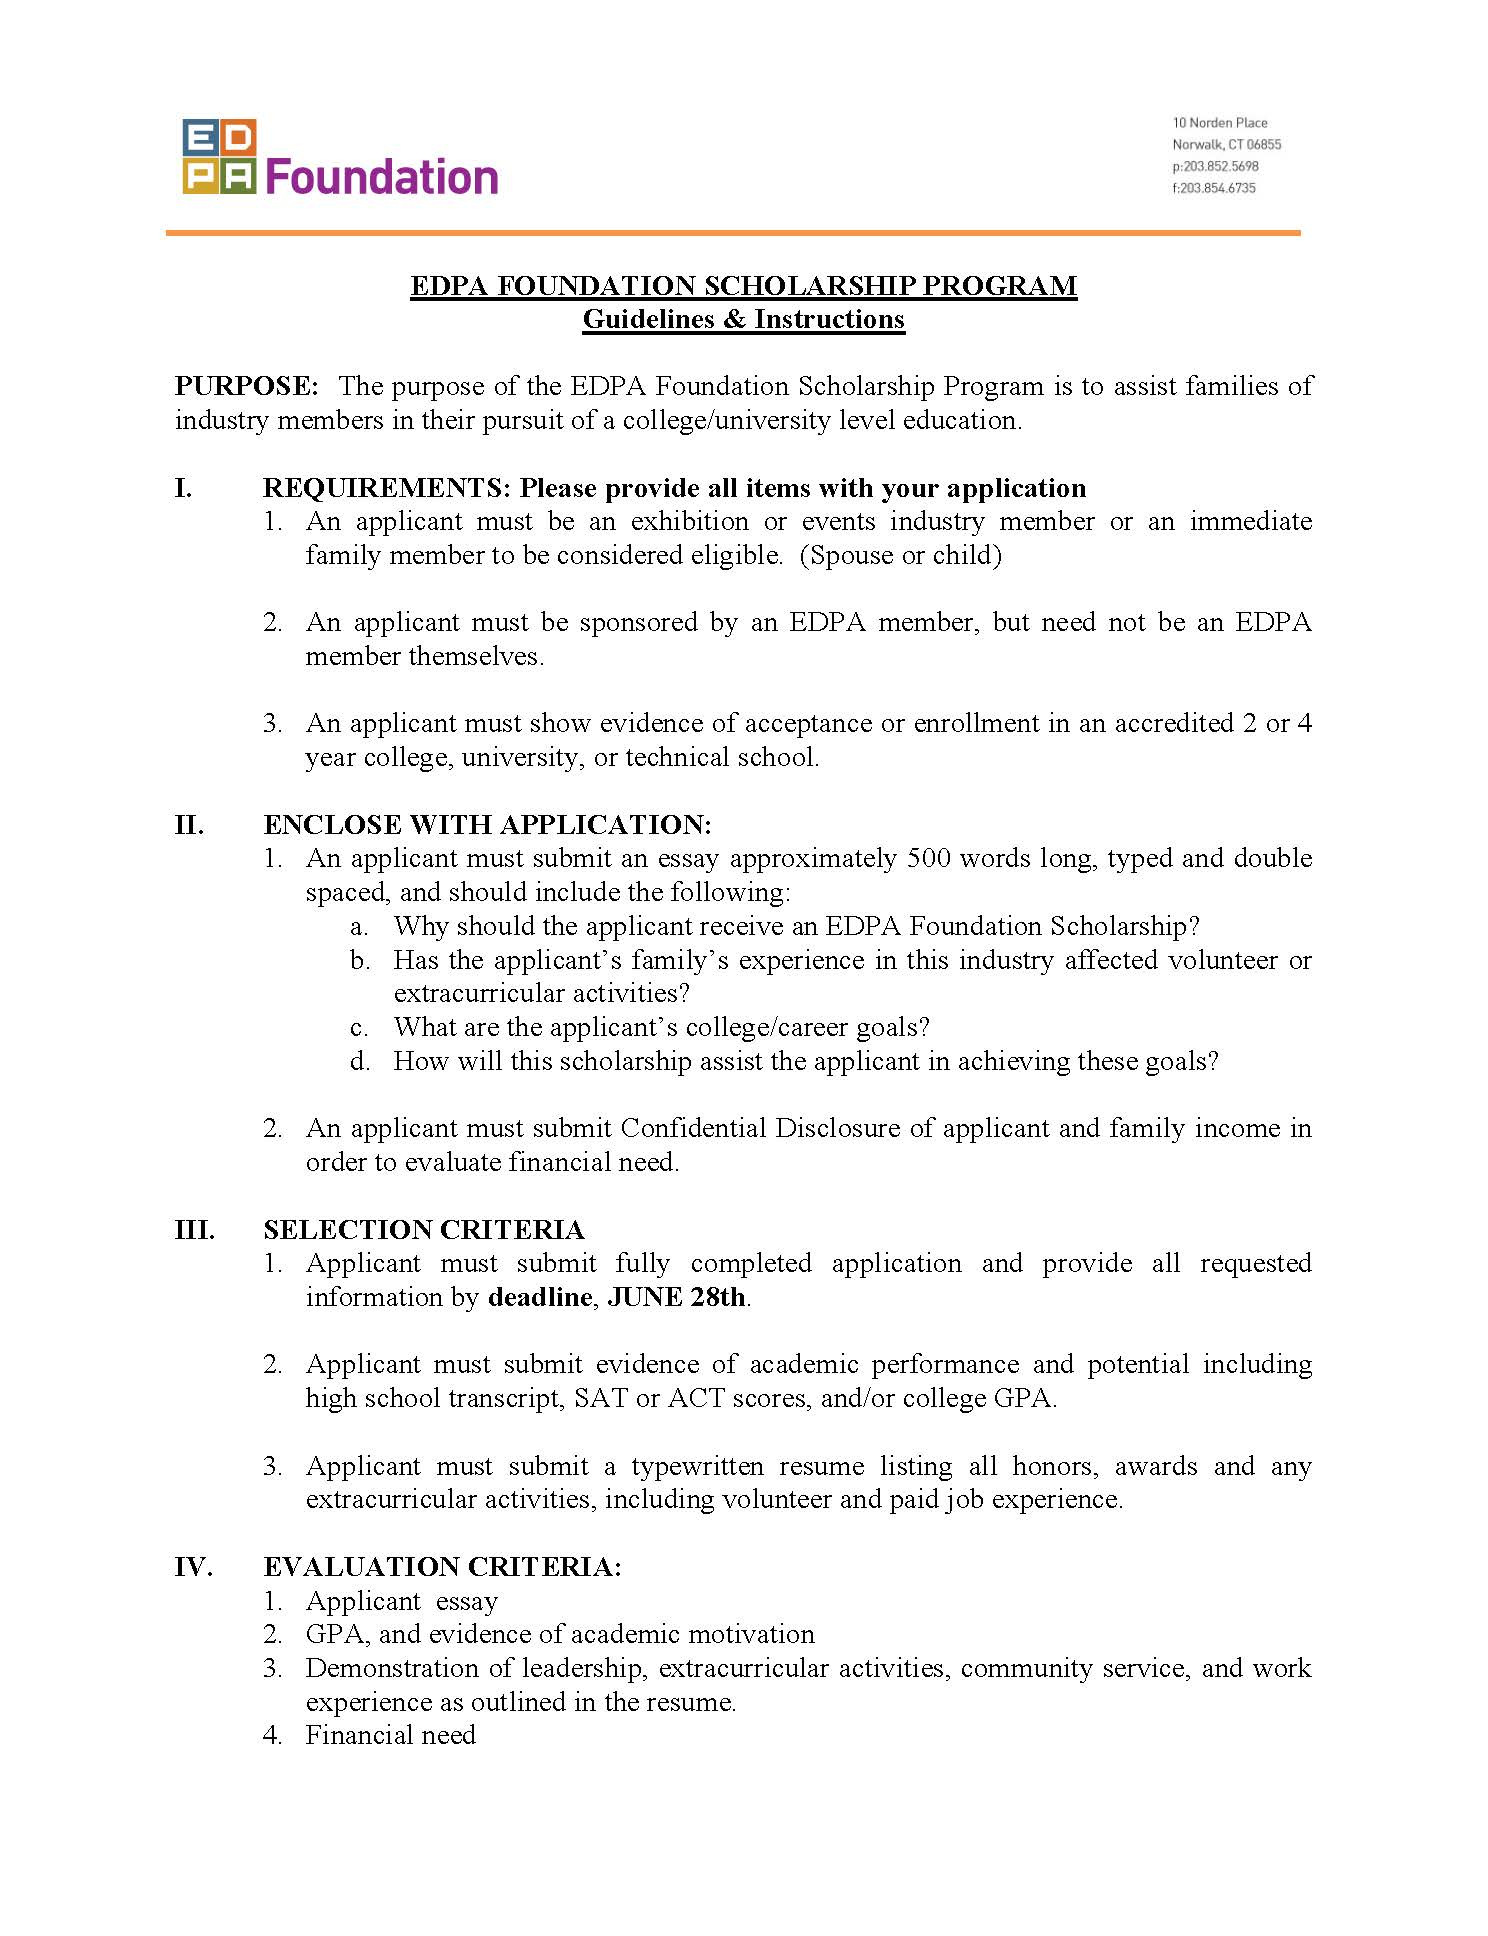 003 Scholarships That Don T Require Essays Dont College Paper Academic Colleges Do Not For Admission Edpaf Scholarship Application P Essay Remarkable Are There Any Don't 2019 Canadian Full